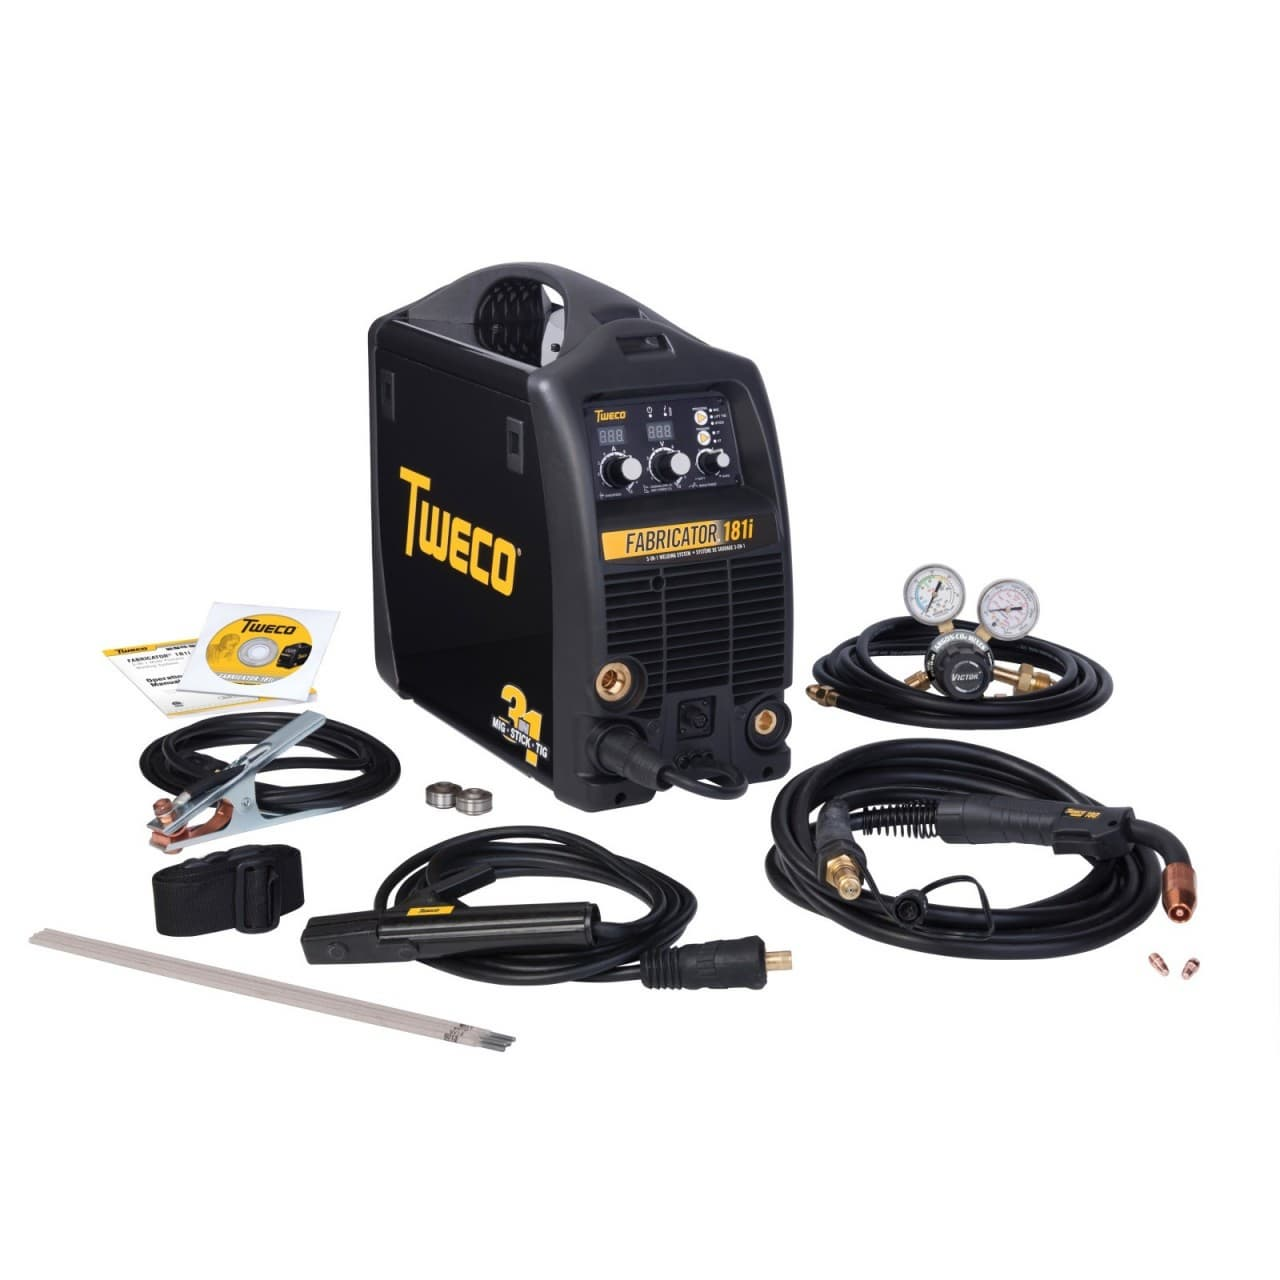 Mig Welder Tradekorea Parts Related Keywords Suggestions Tweco Fabricator 181i And Stick Keyword Multi Process Welders